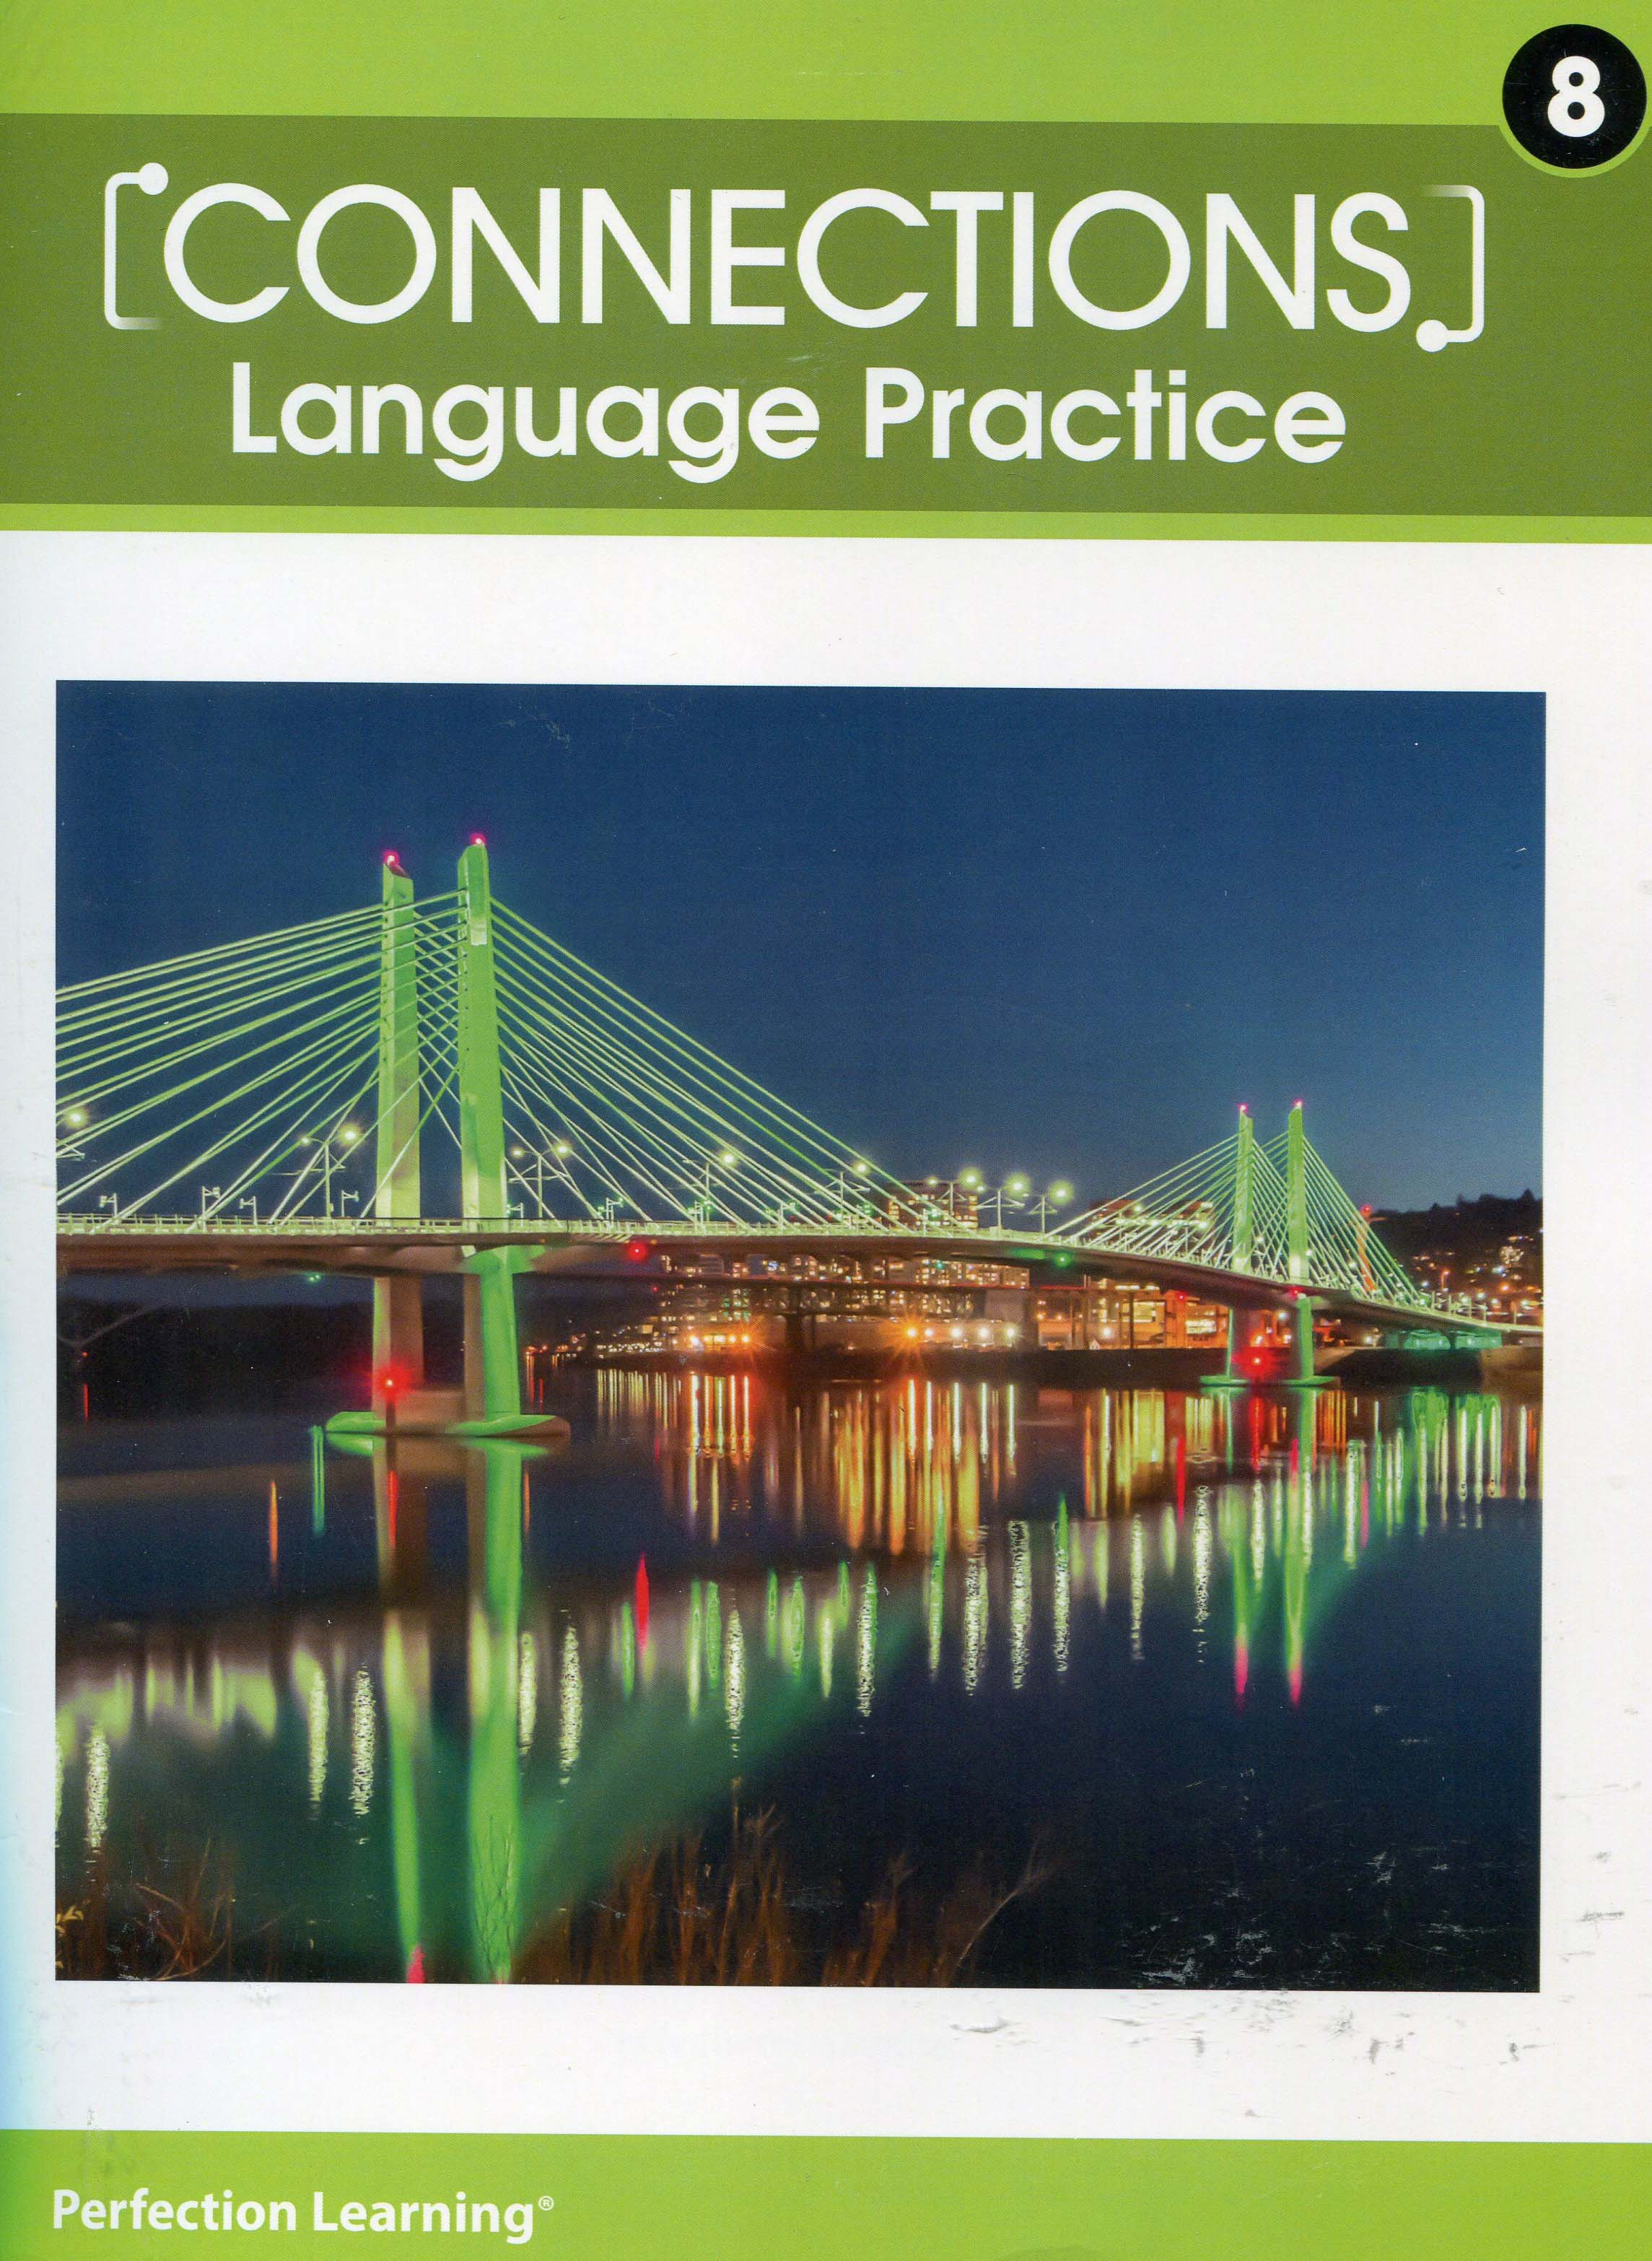 Connections Language Practice: Grade 8